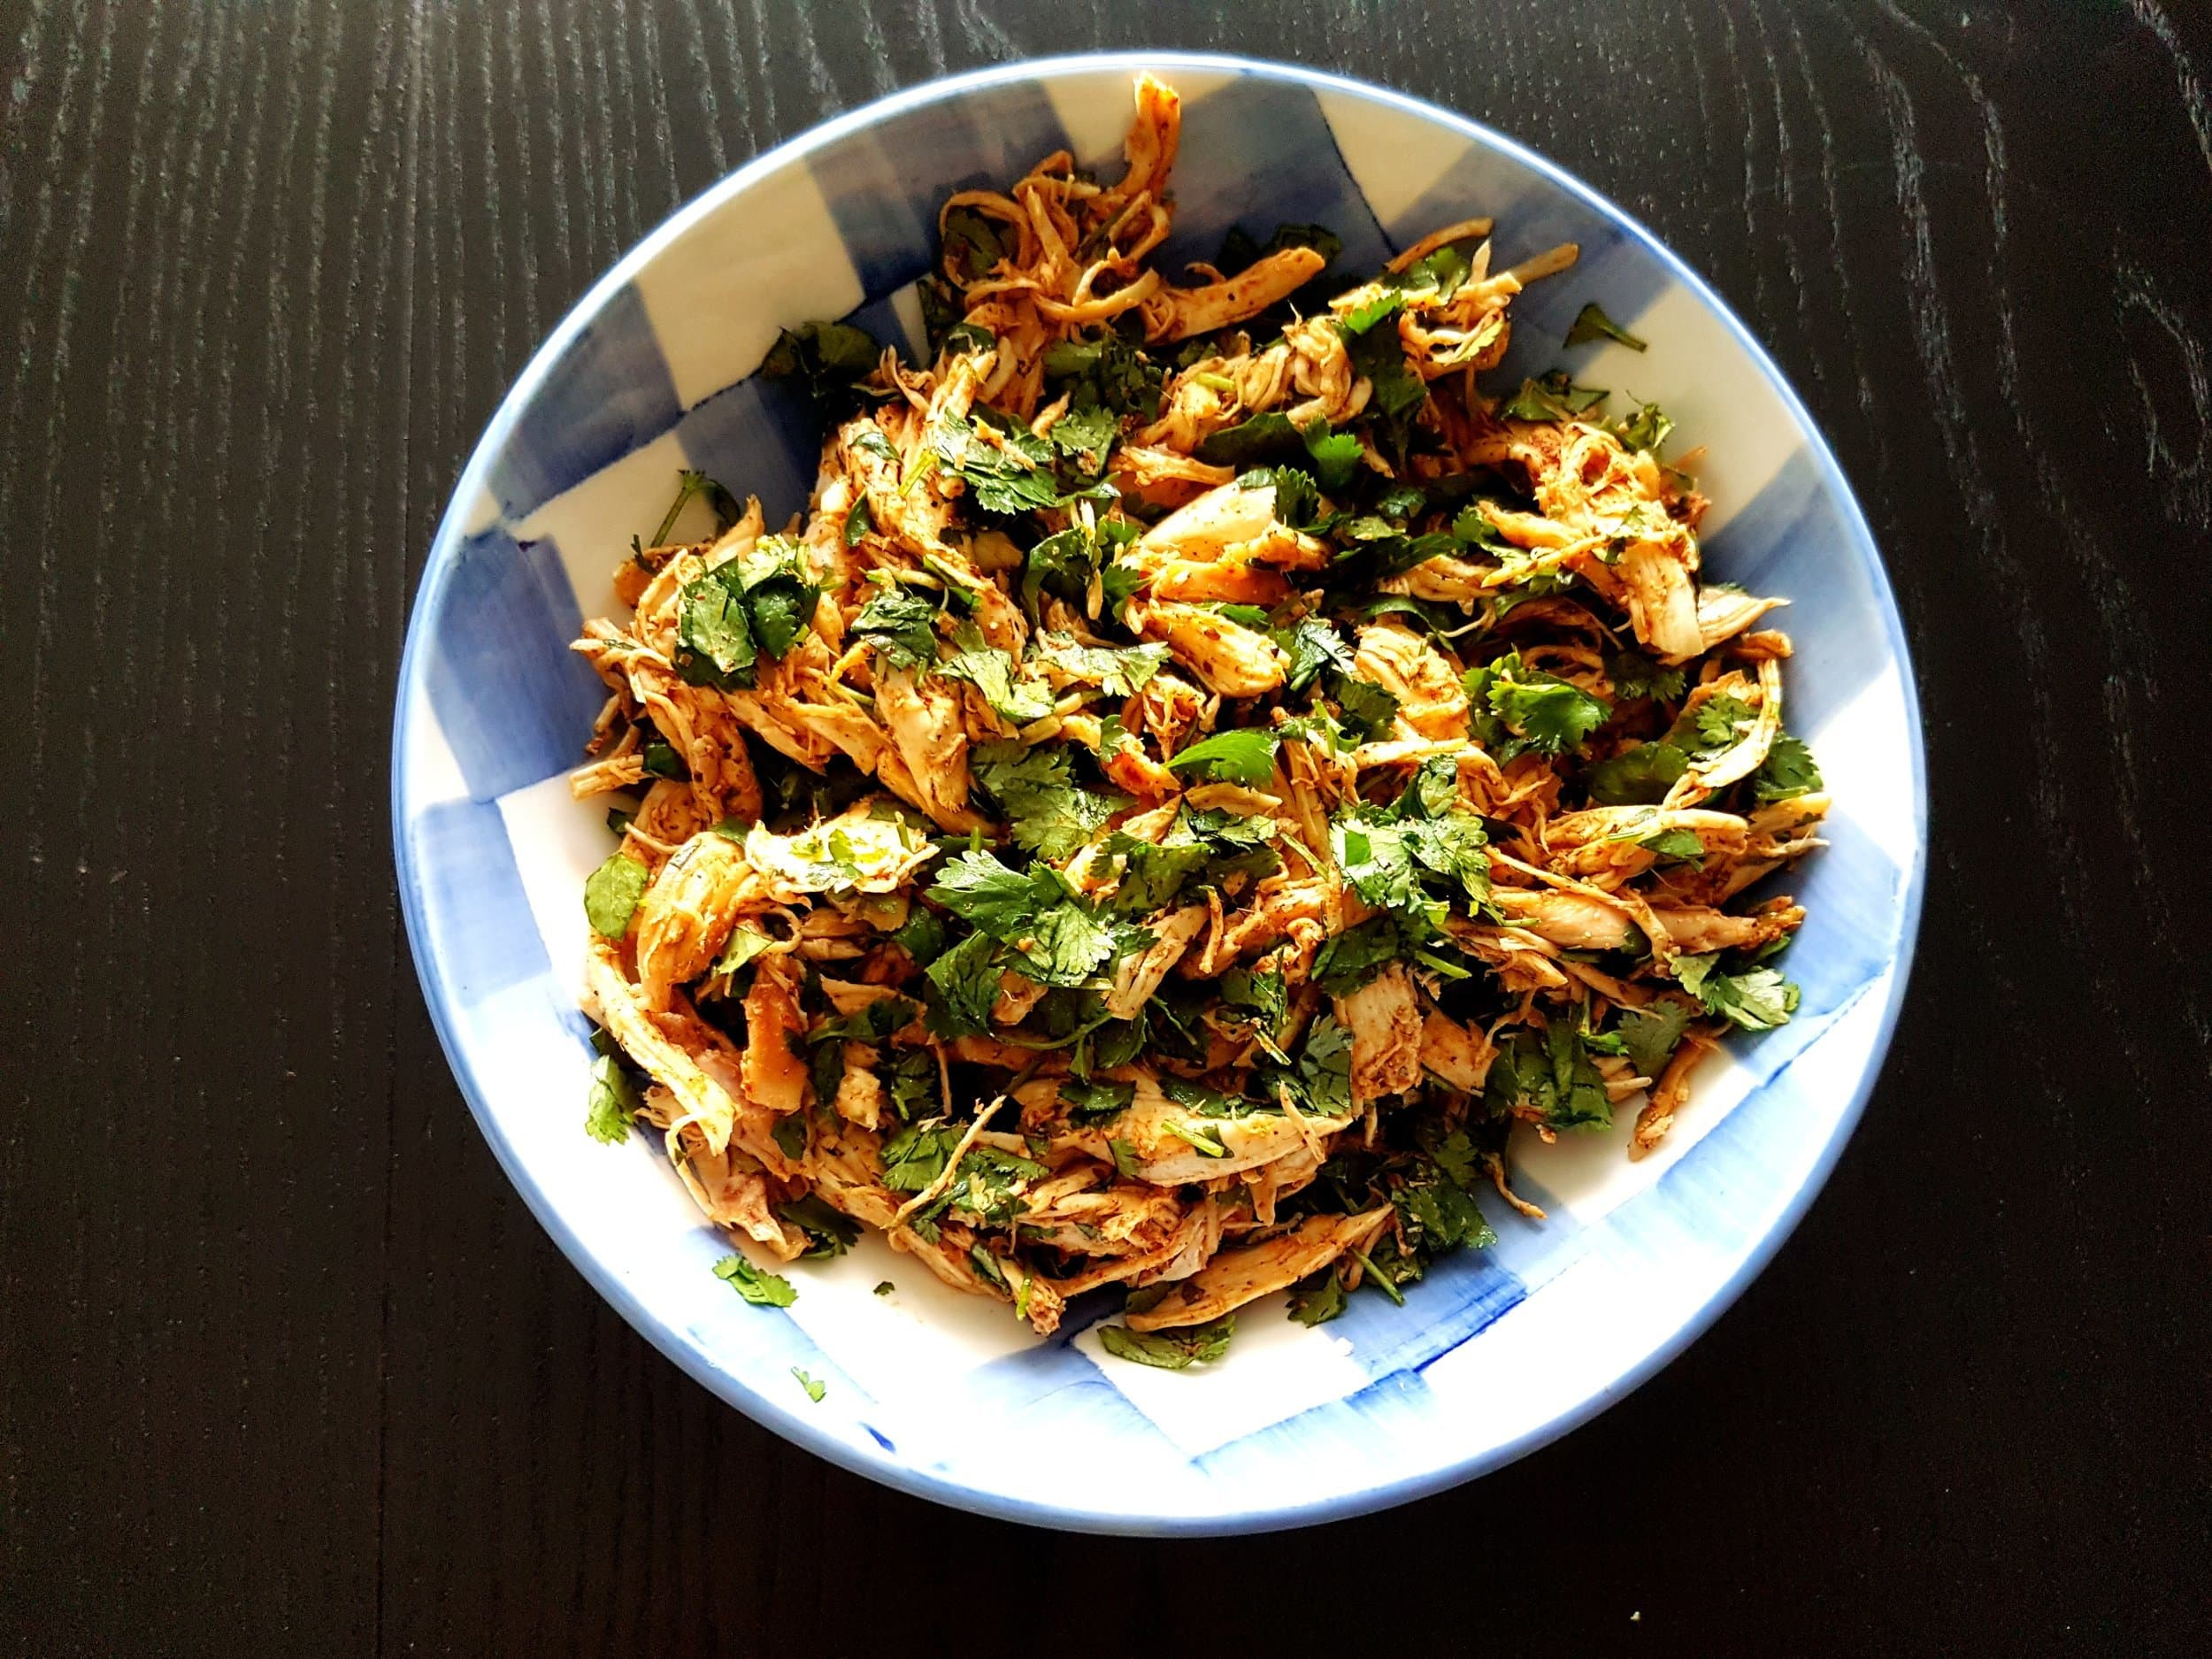 Shredded chicken in a bowl mixed with fresh chopped cilantro.